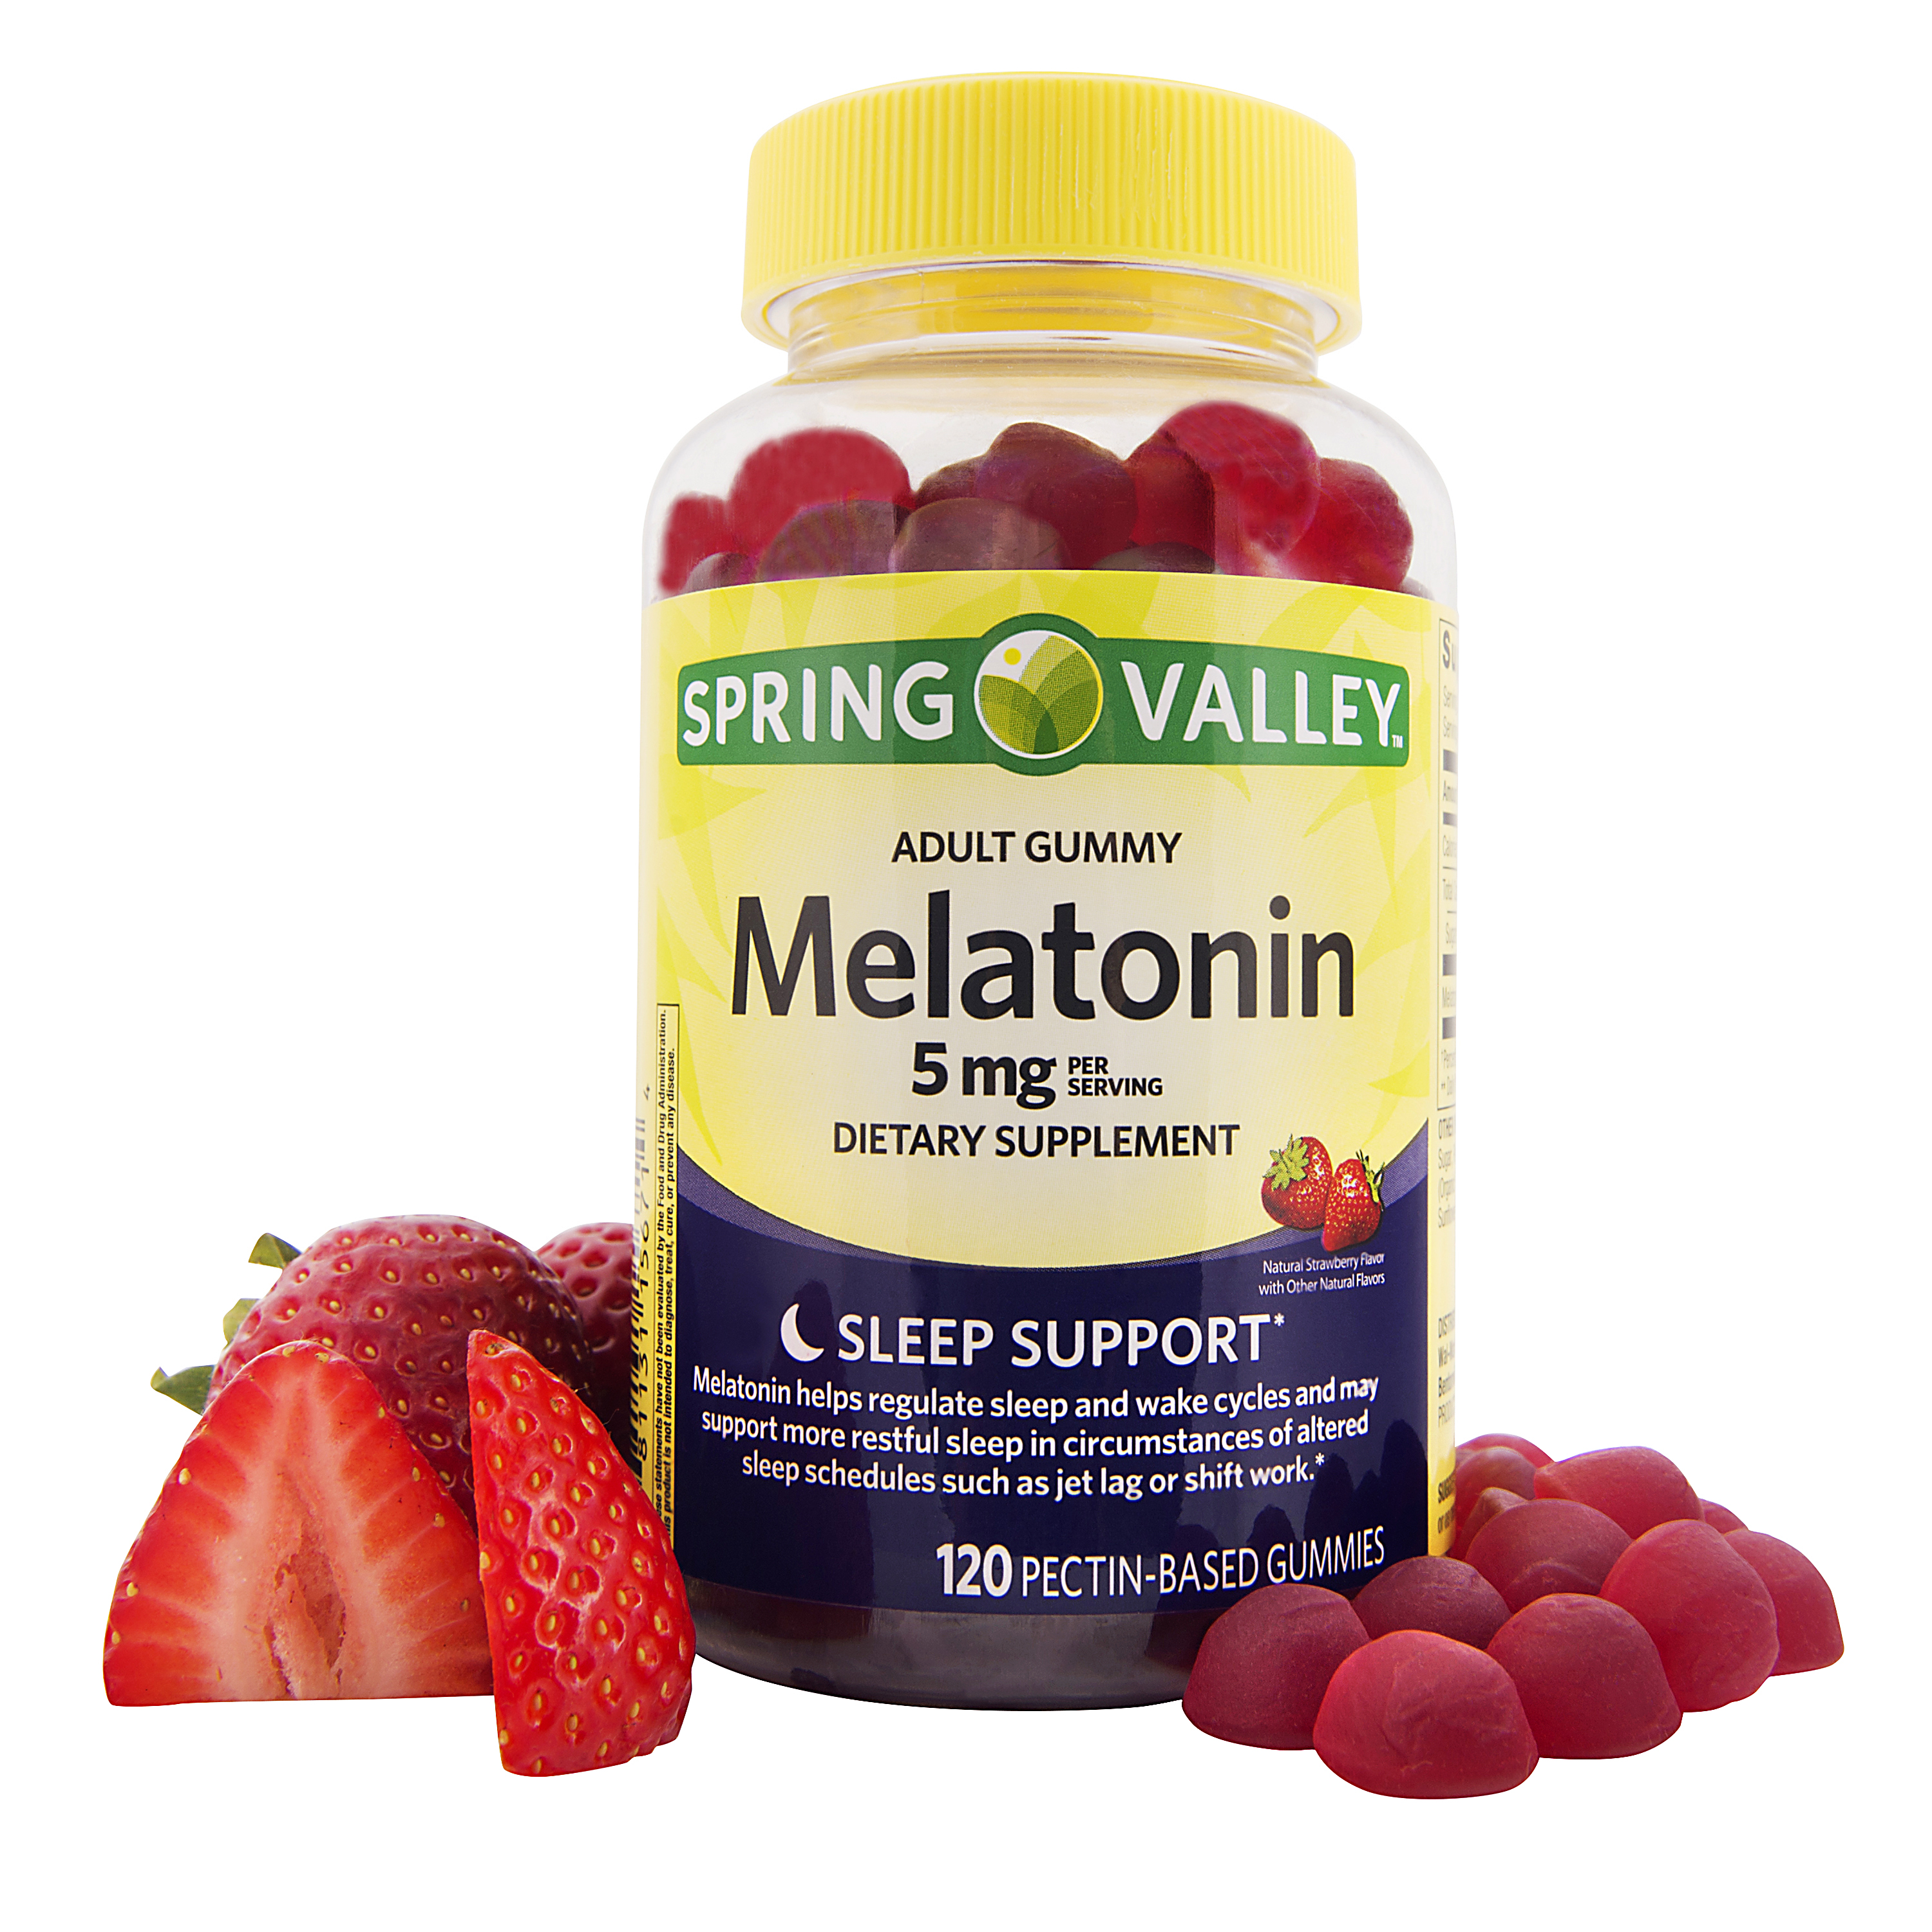 Spring Valley Melatonin Adult Pectin-Based Gummies, 5 mg, 120 count